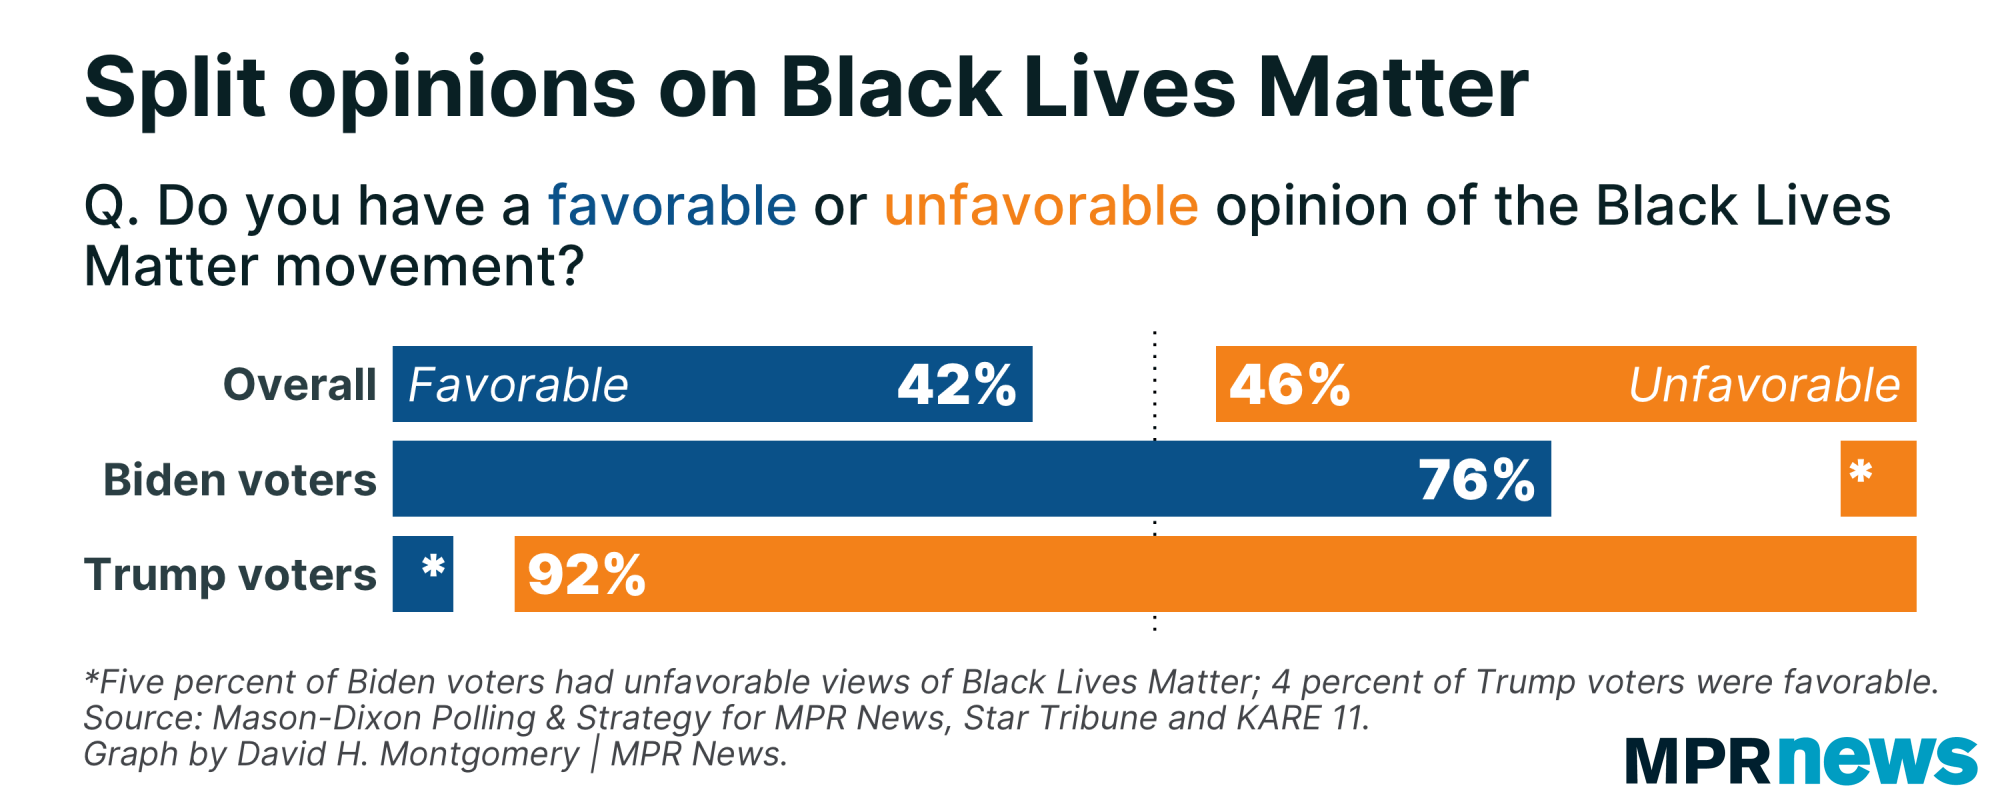 Graph showing approval ratings for the Black Lives Matter movement